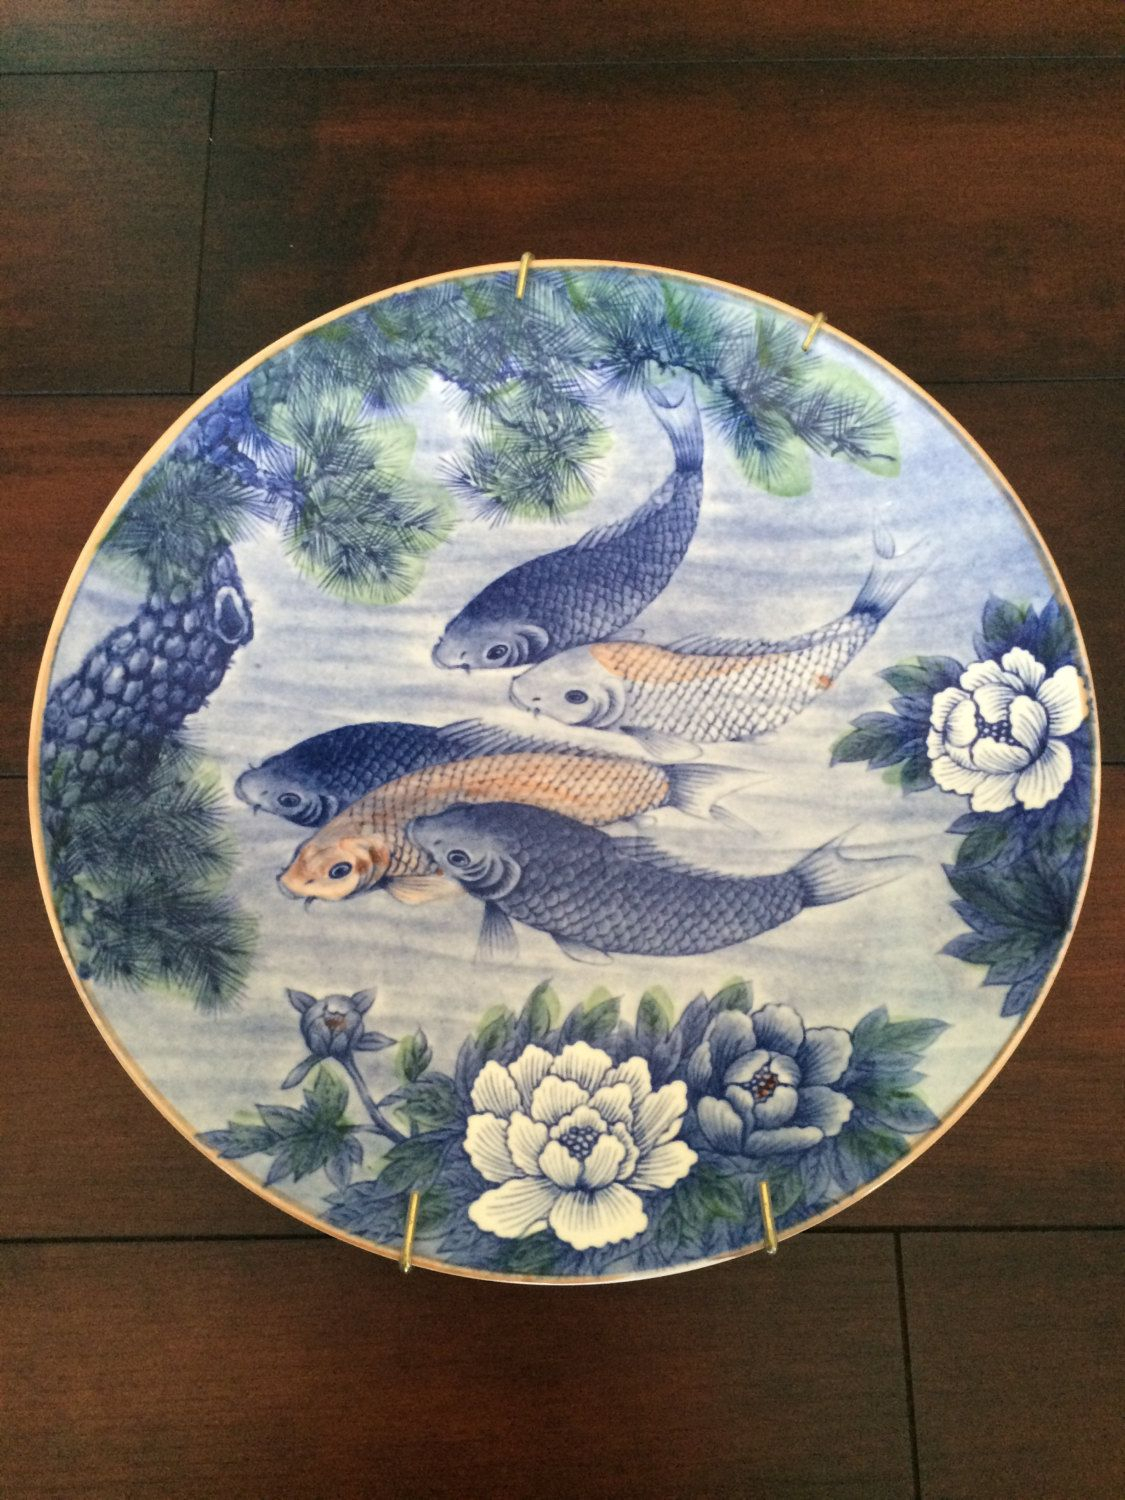 Well Known Ceramic Blue Fish Plate Wall Decor Throughout Koi Dish Platter, Sun Ceramics, Large Platter Made In Japan, 1960's (View 3 of 20)